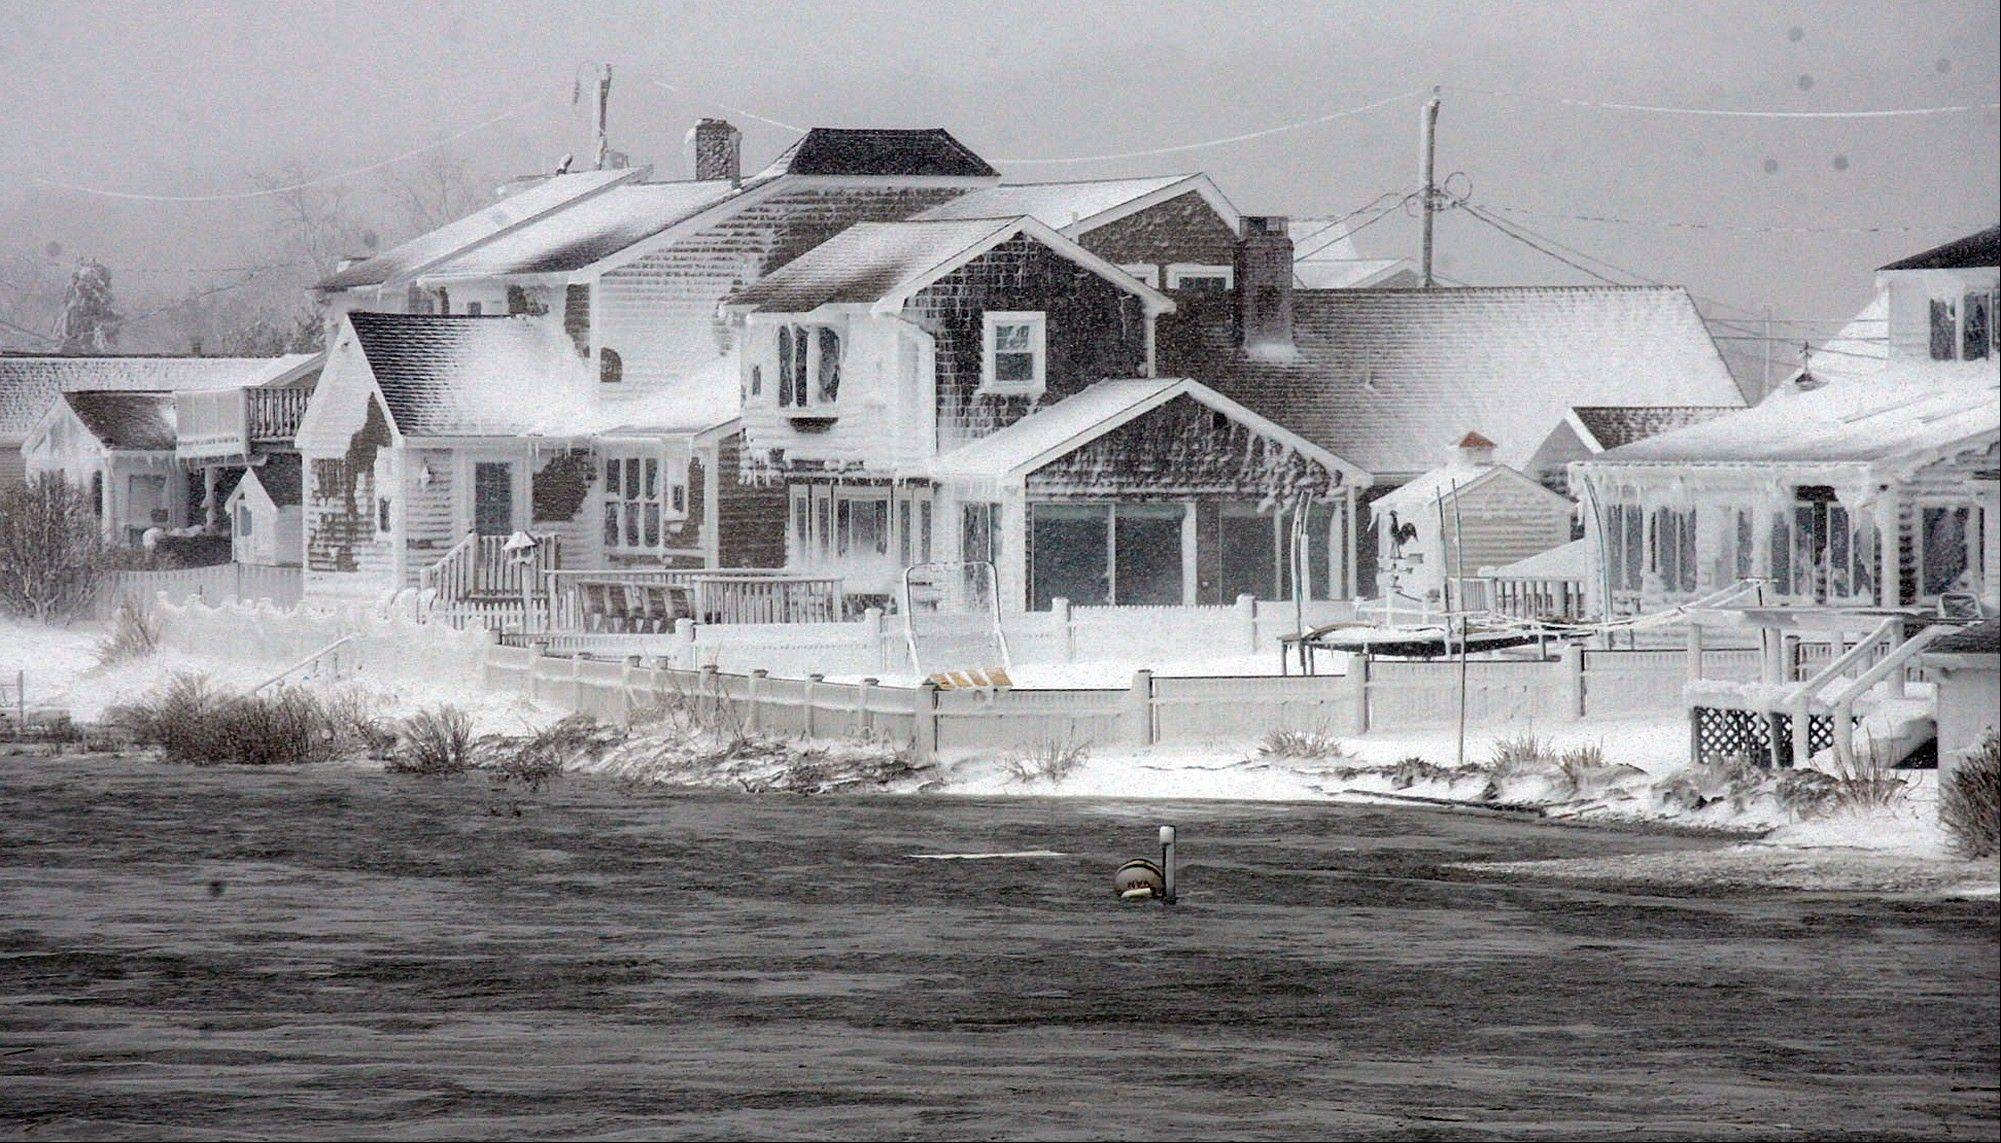 Wet snow coats houses along the South River at high tide in the Humarock coastal neighborhood of Scituate Mass. on Saturday, Feb. 9, 2013. A behemoth storm packing hurricane-force wind gusts and blizzard conditions swept through the Northeast overnight.